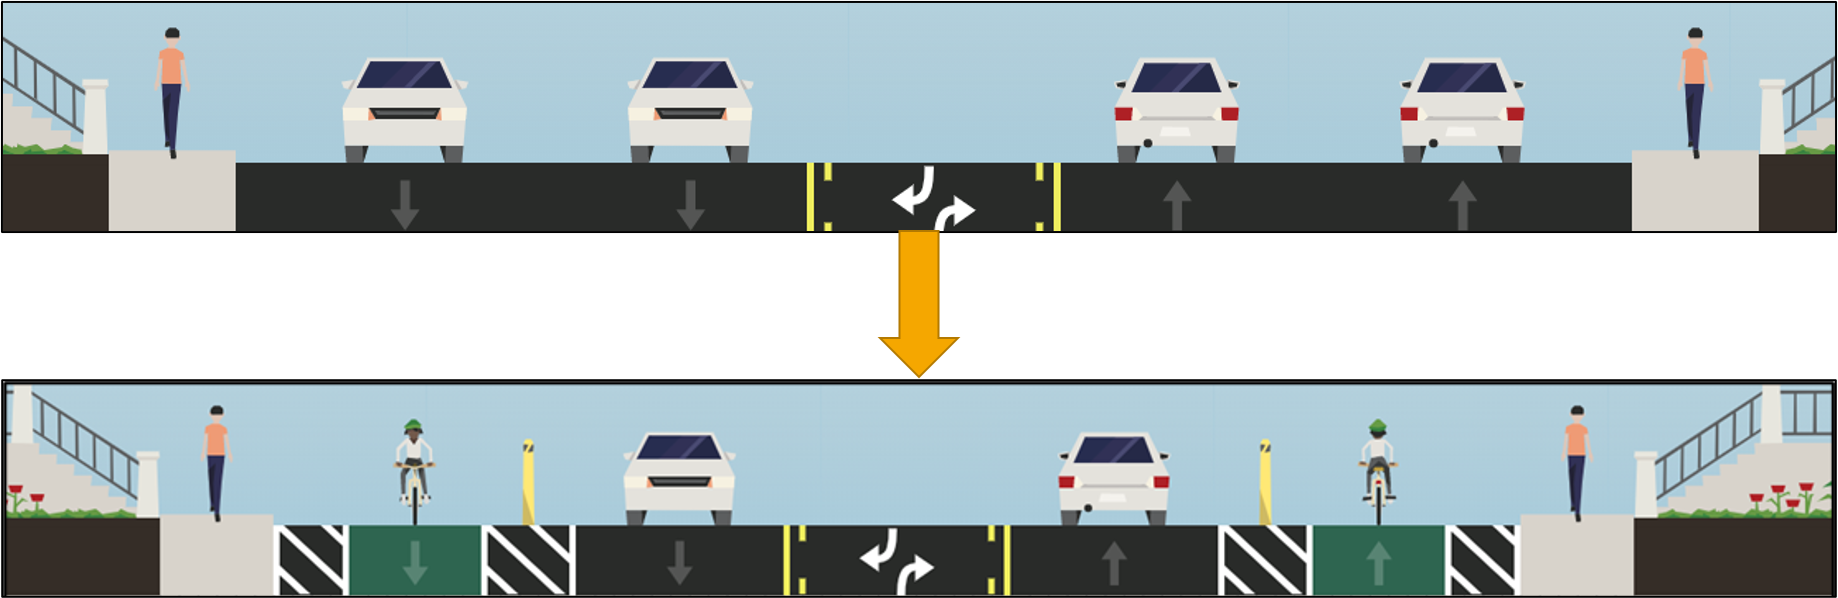 Before and after lane reduction